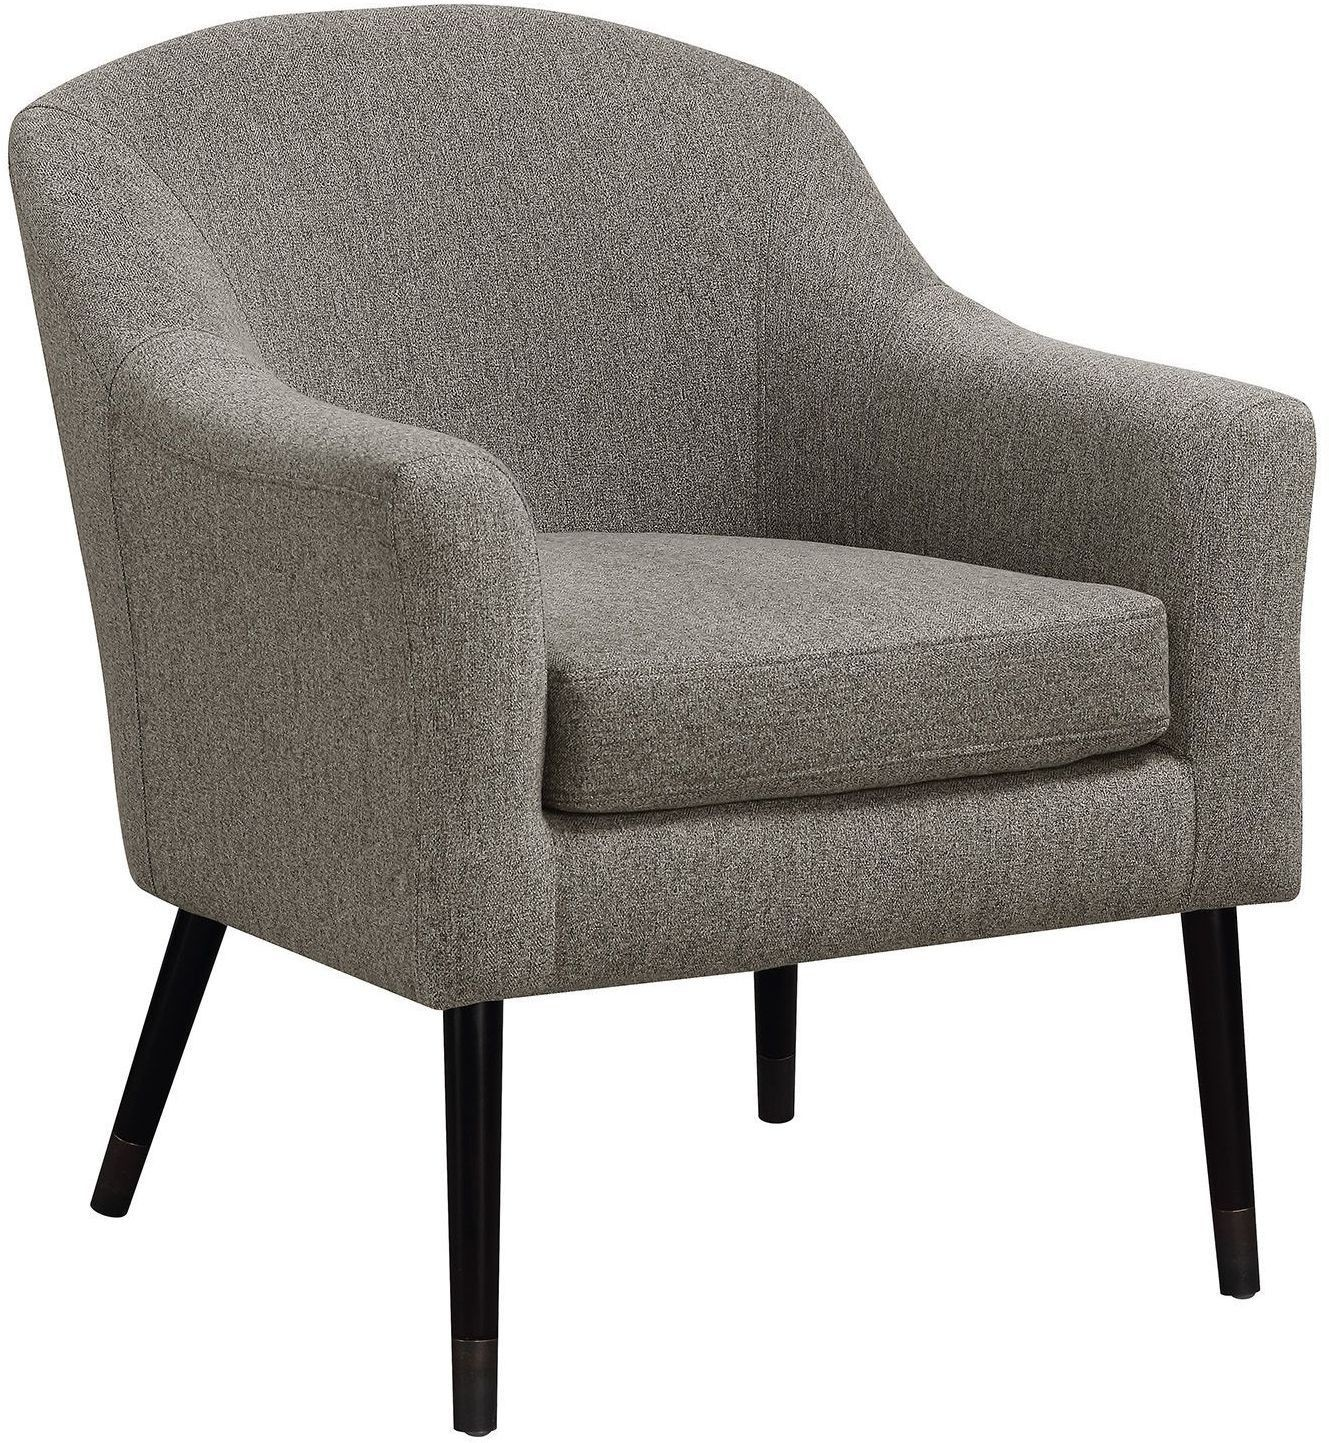 Gray And Black Accent Chair By Scott Living From Coaster